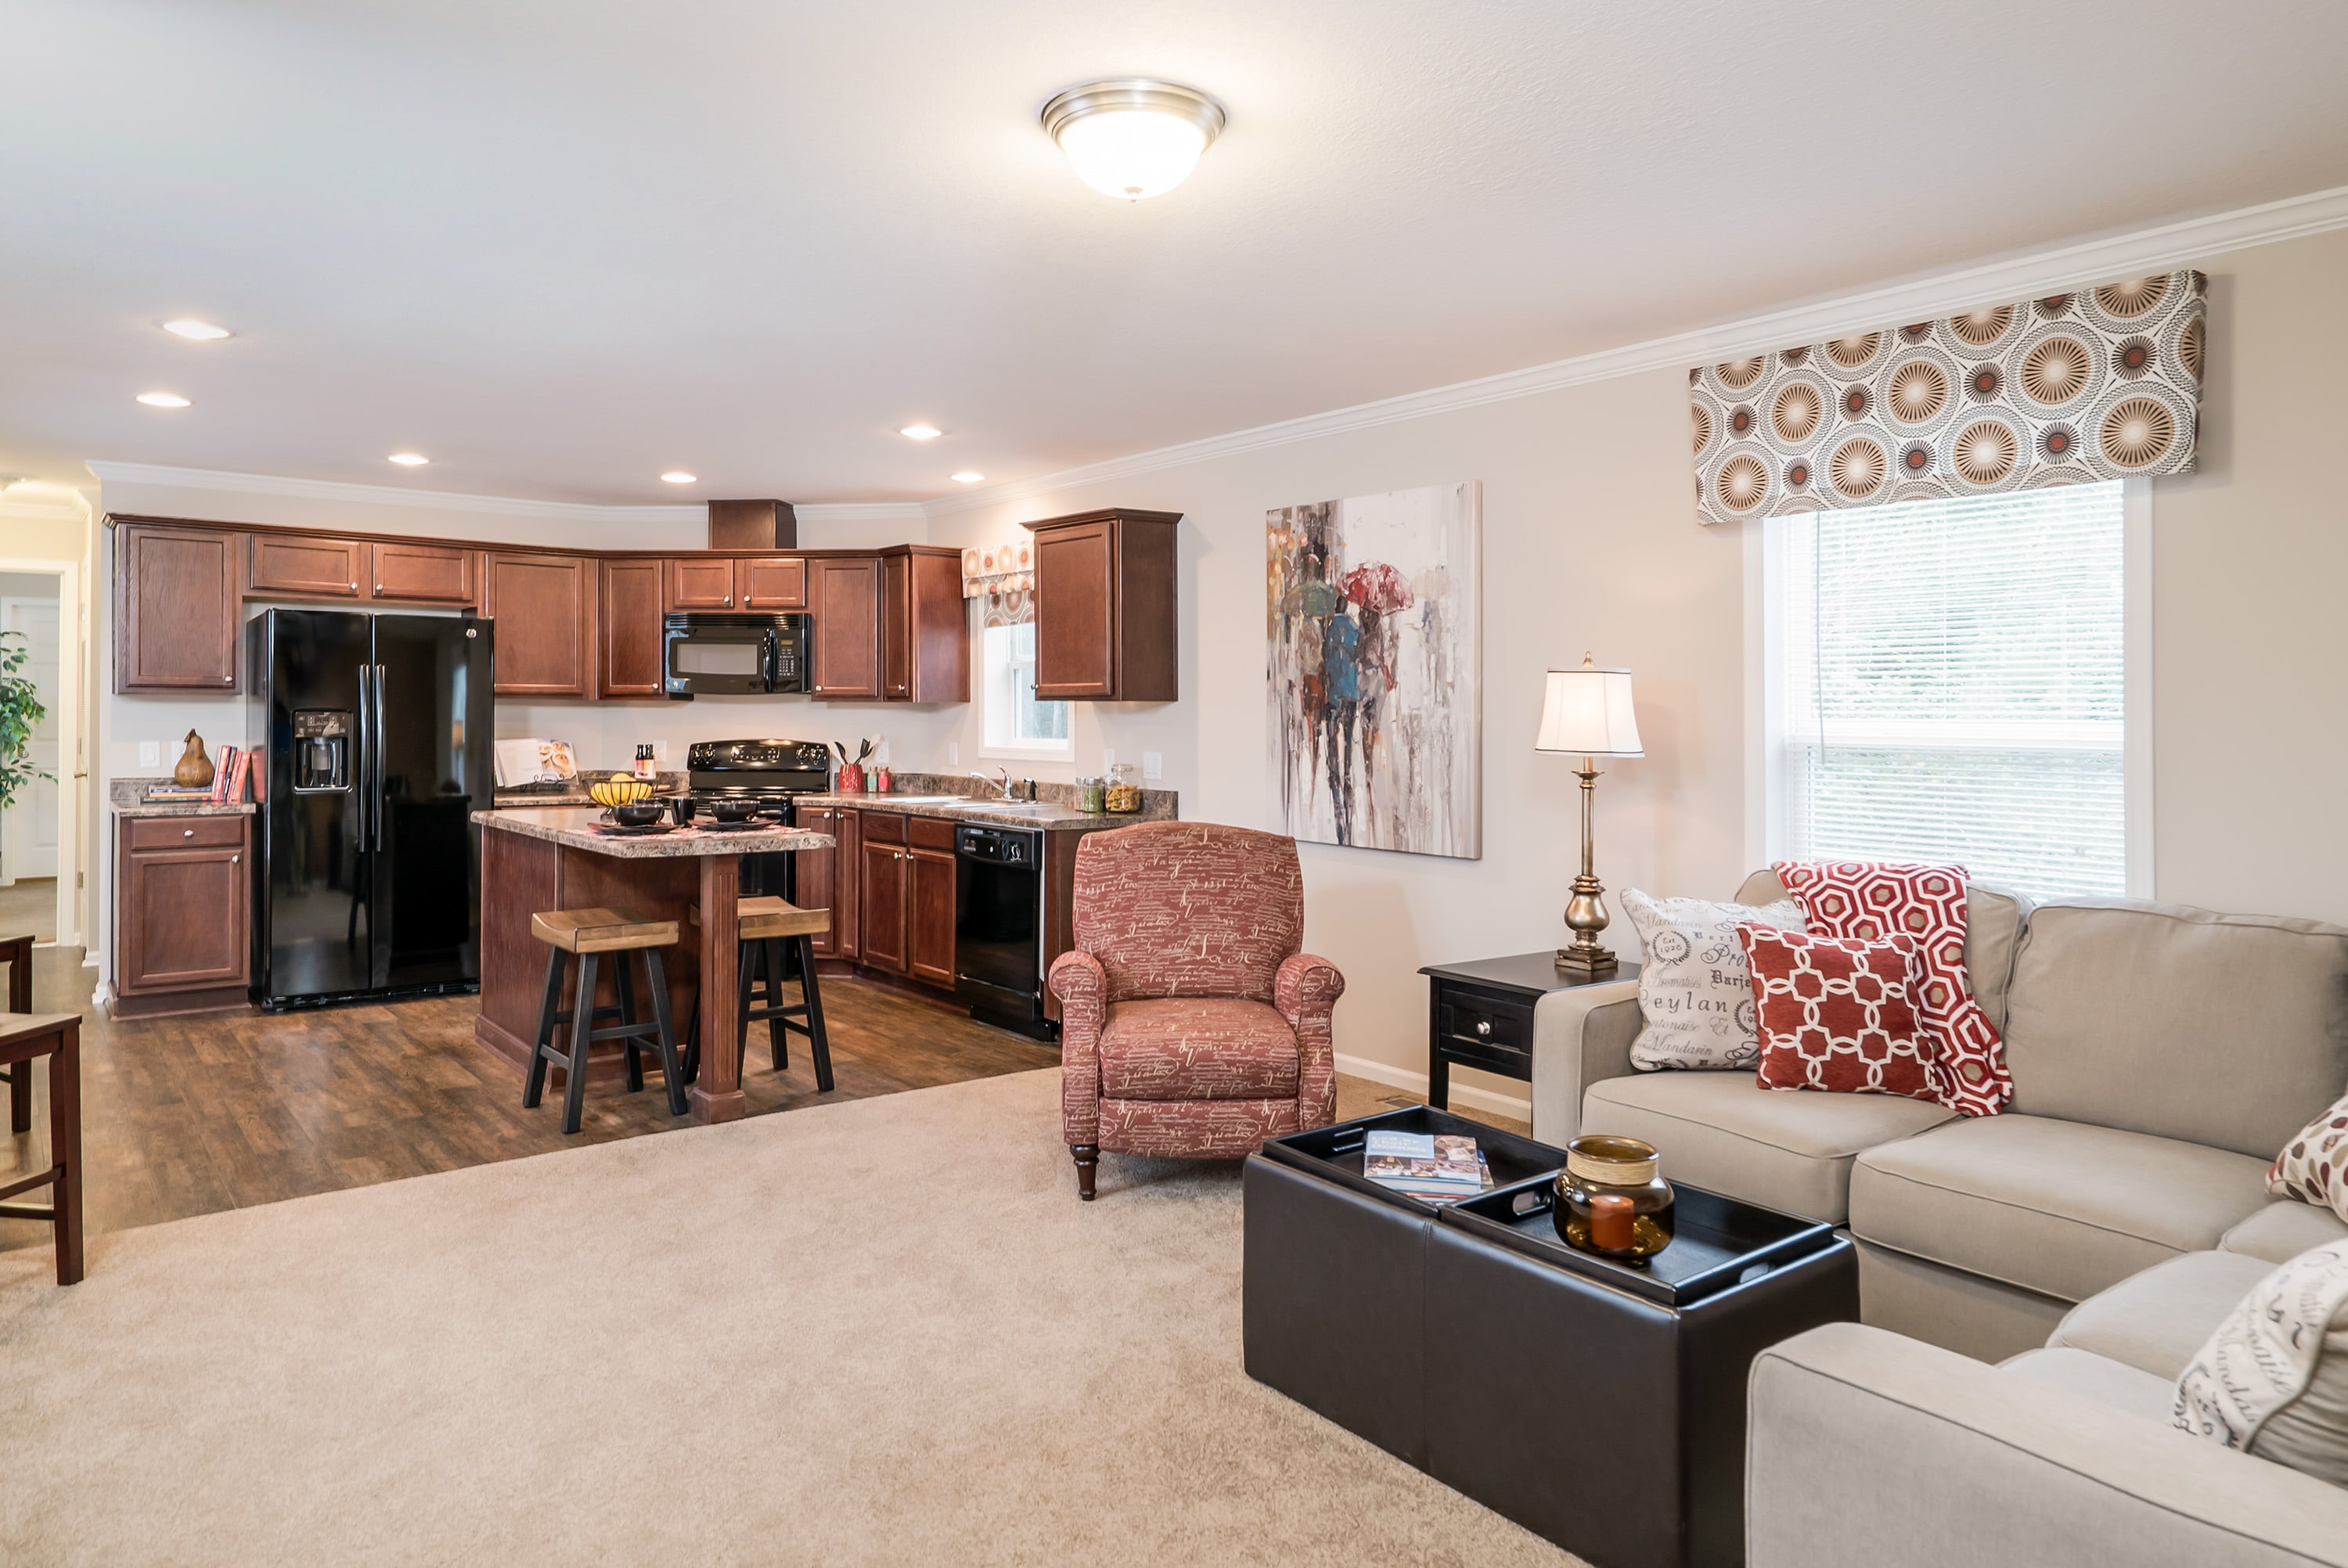 3 bedroom floor plan f 401 hawks homes manufactured modular 16 80 3 2 with an open floor plan it has finished sheetrock walls through out 8 flat ceilings perimeter vents upgraded cabinets and insulation